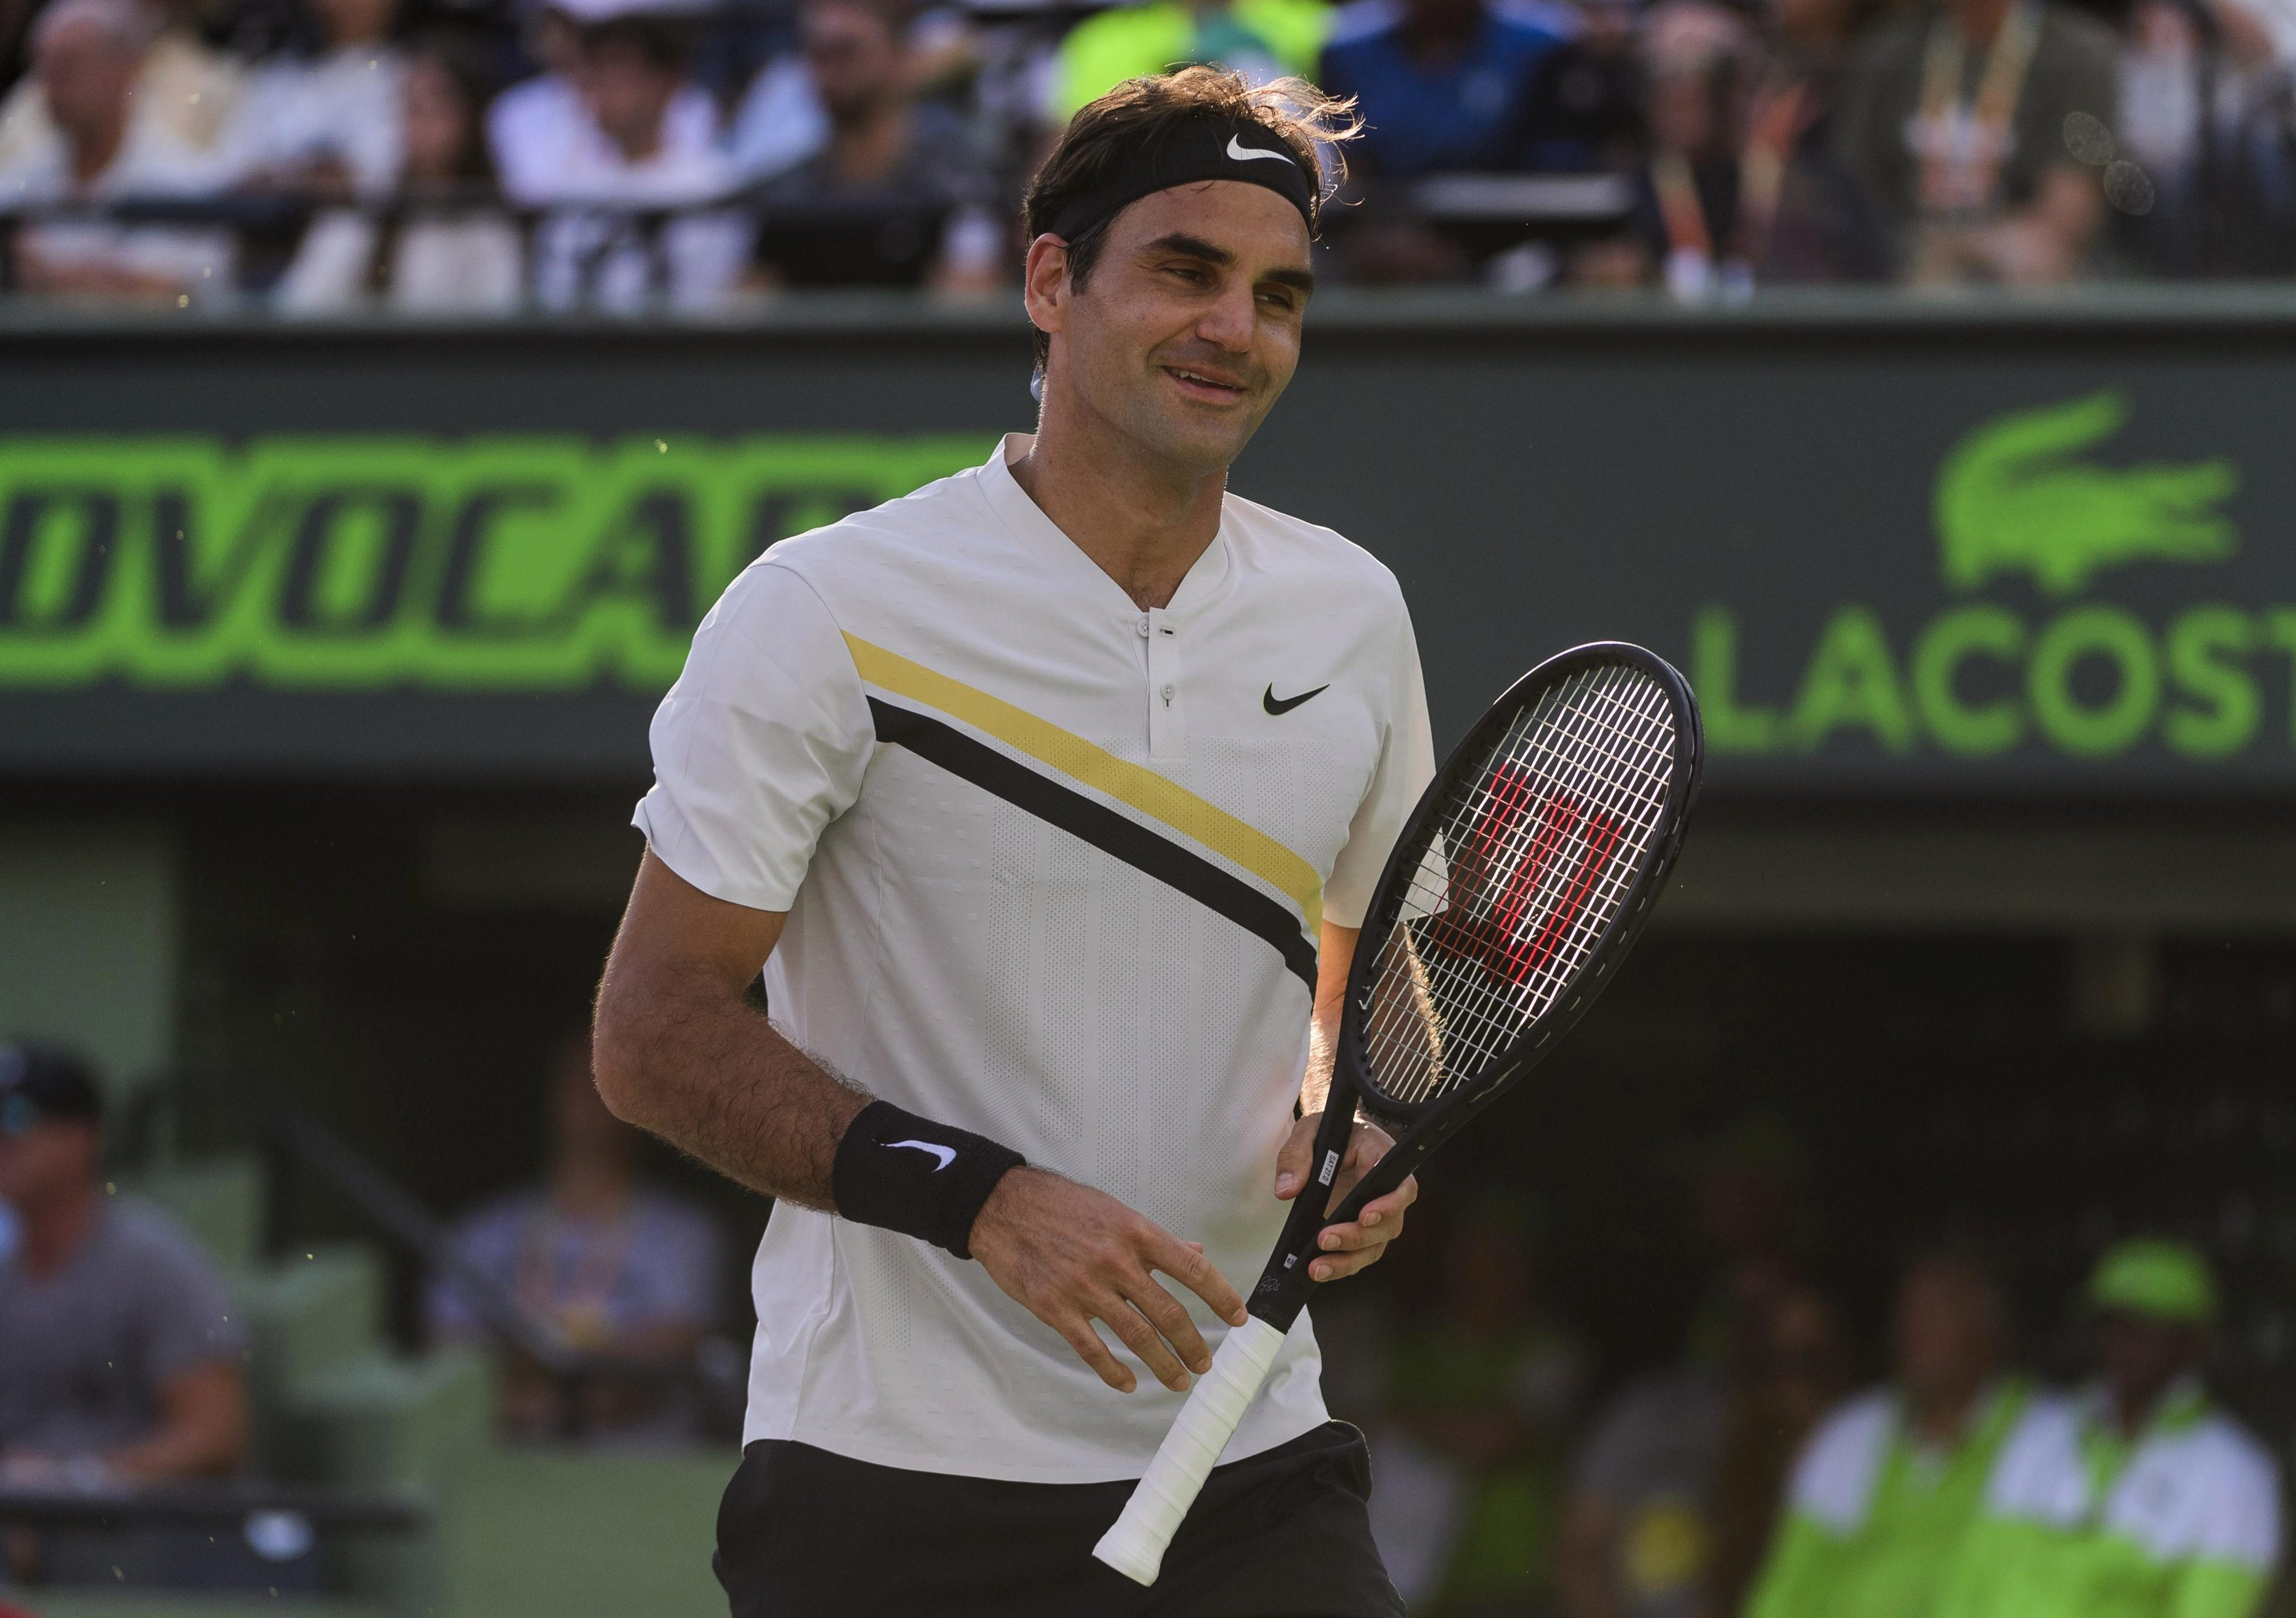 Roger Federer will miss the entire clay court season to prepare for Wimbledon